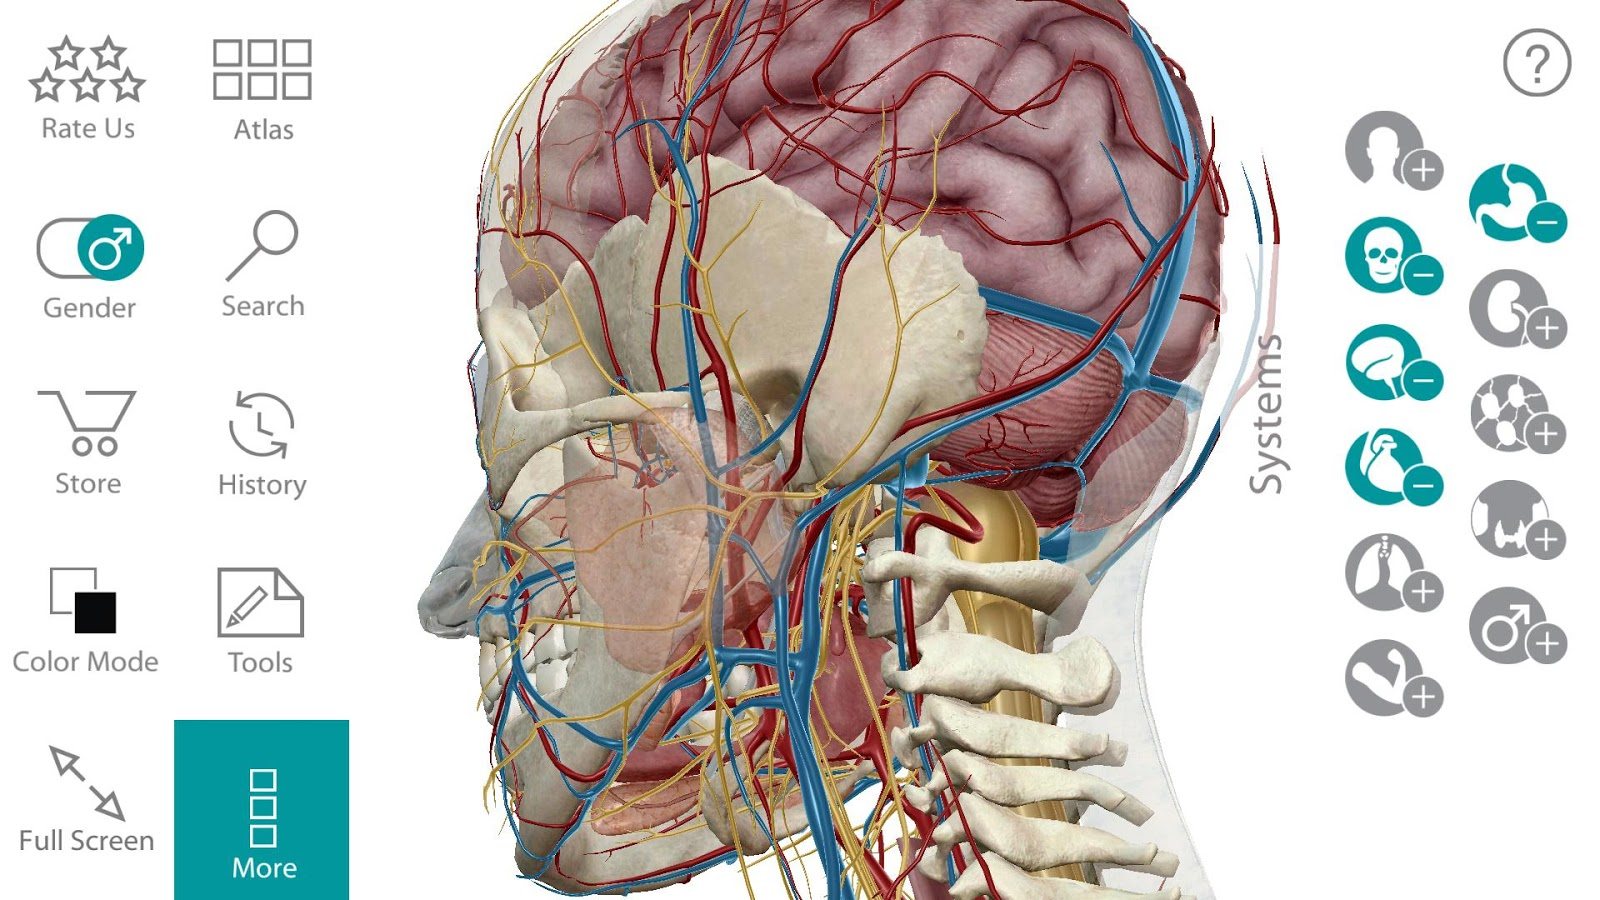 Human anatomy atlas screenshot